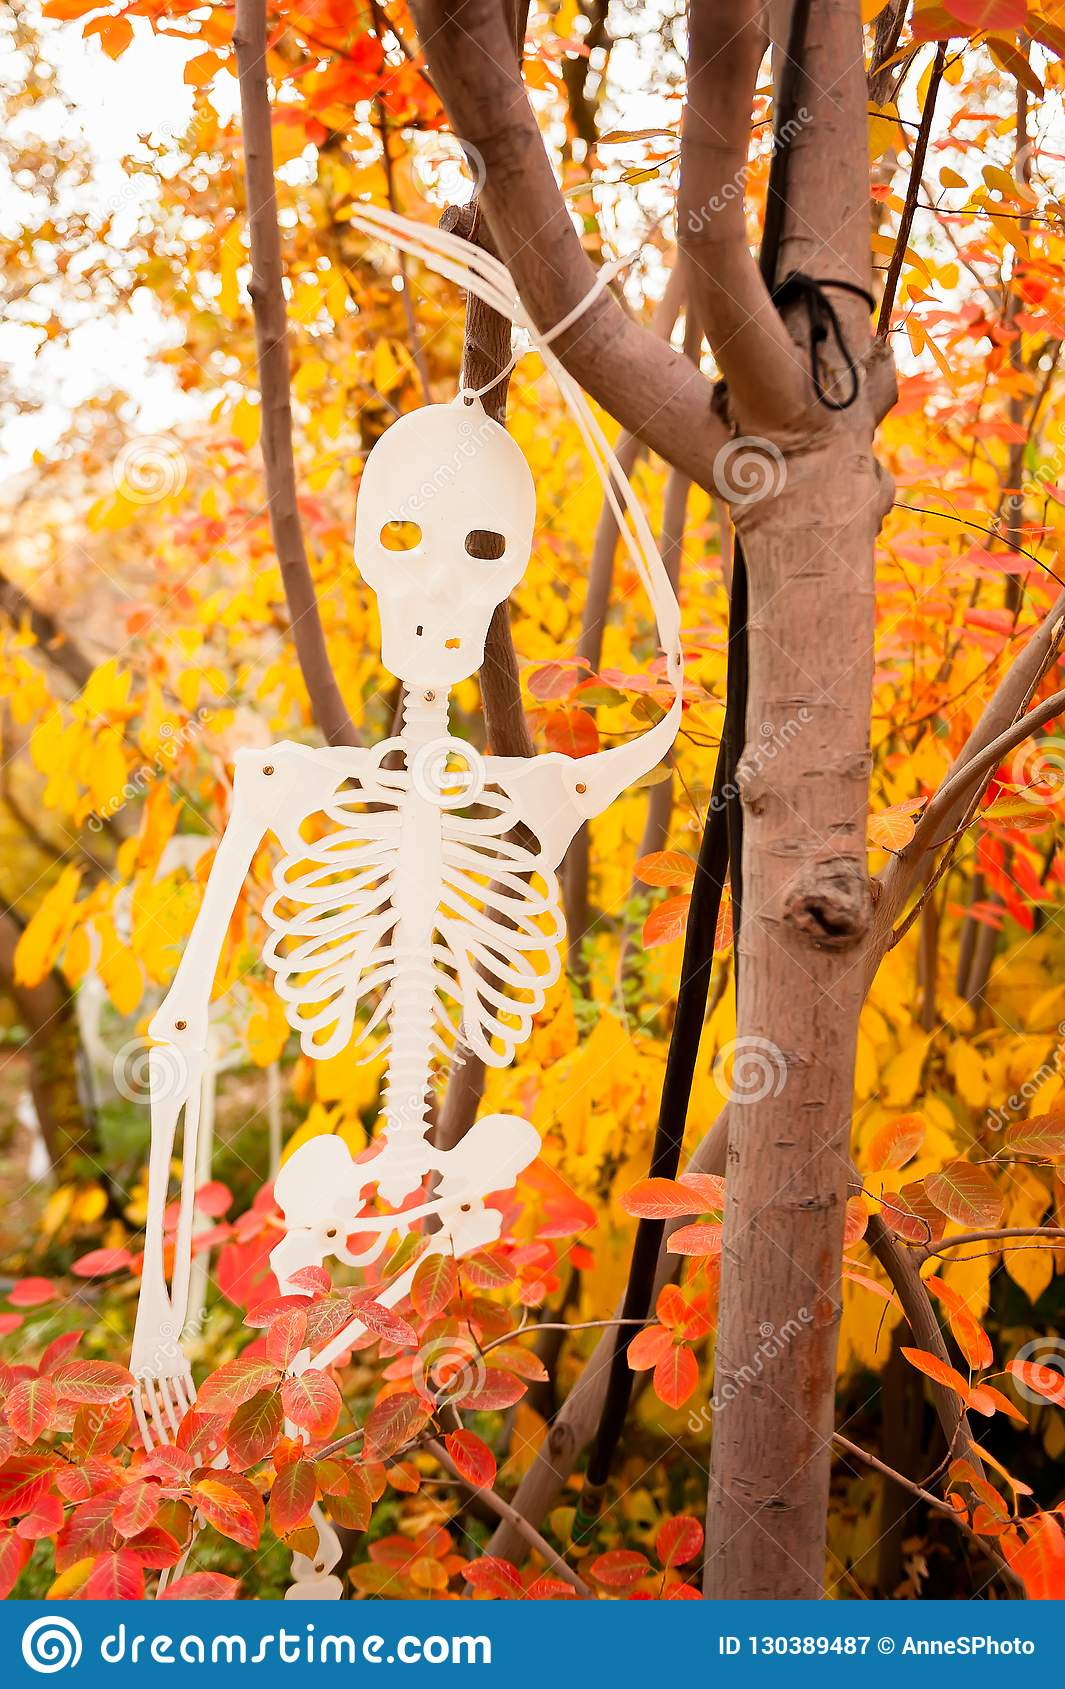 A Halloween skeleton decoration hanging in a tree with colorful leaves in the background.